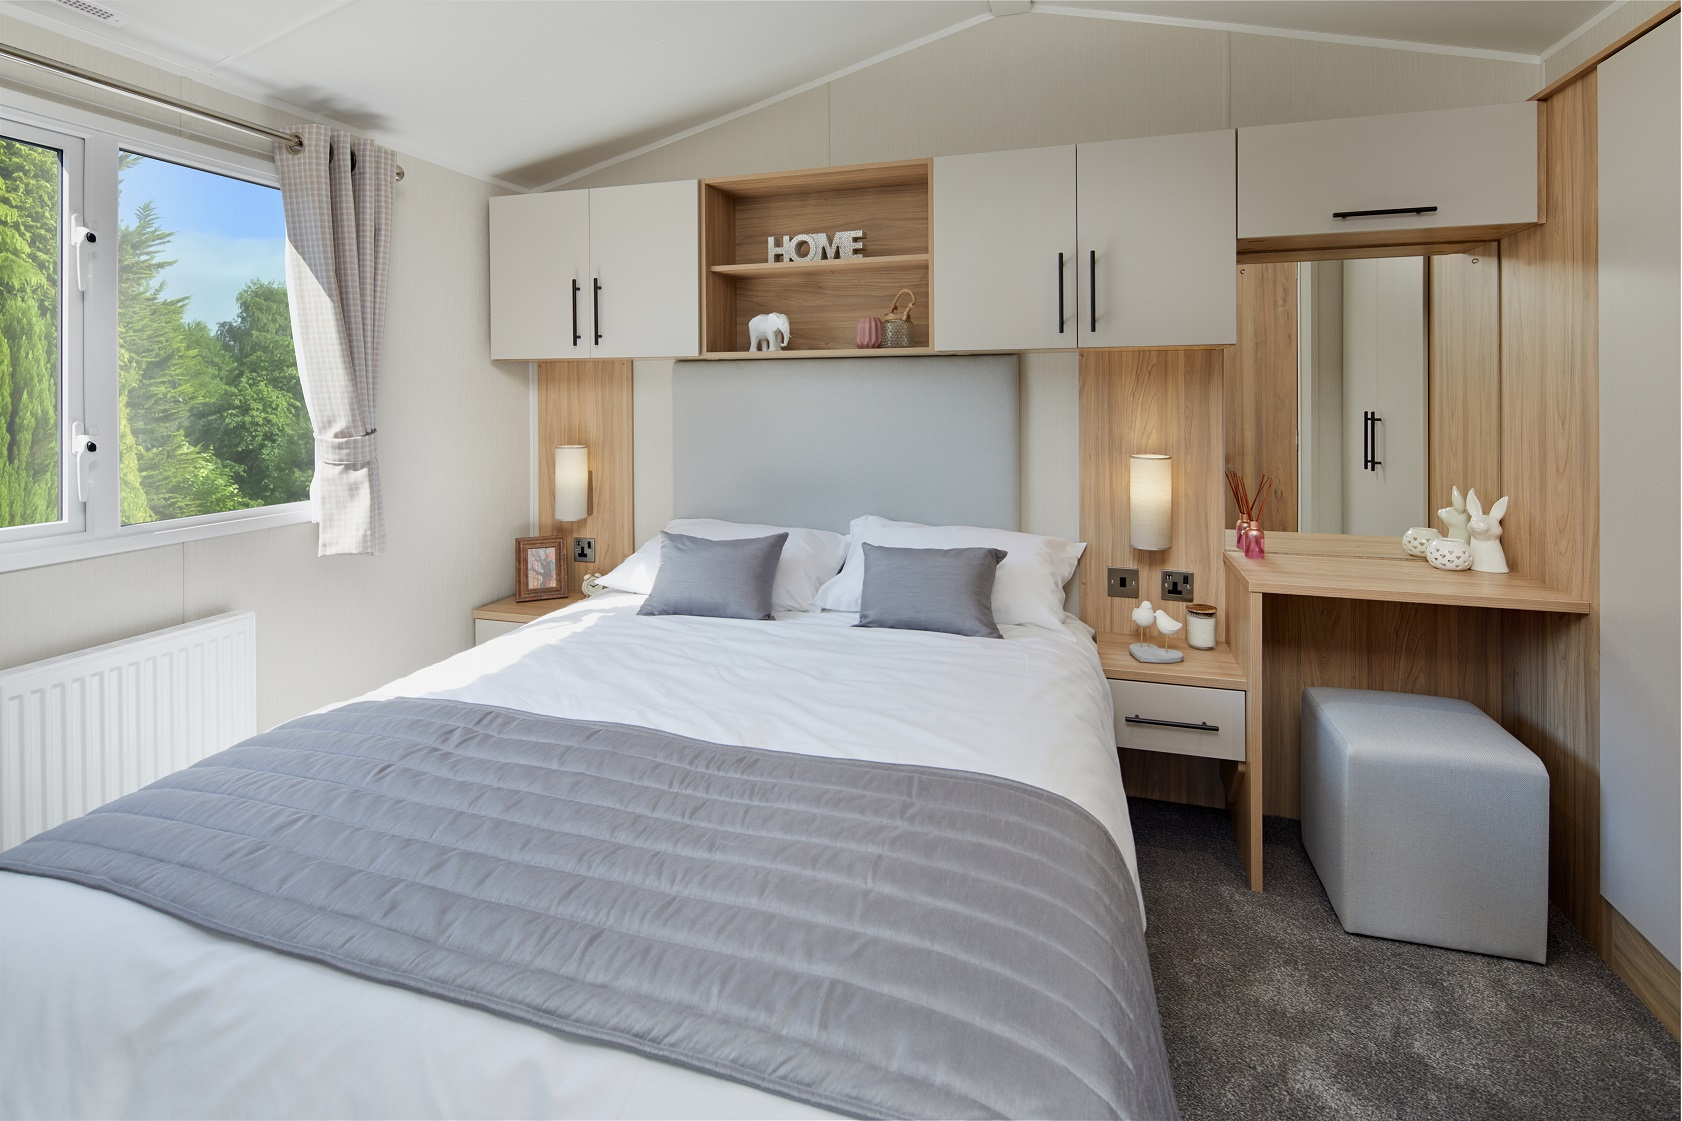 Willerby Manor: New Static Caravans and Holiday Homes for Sale, Langley Moor, Durham Large Image 4